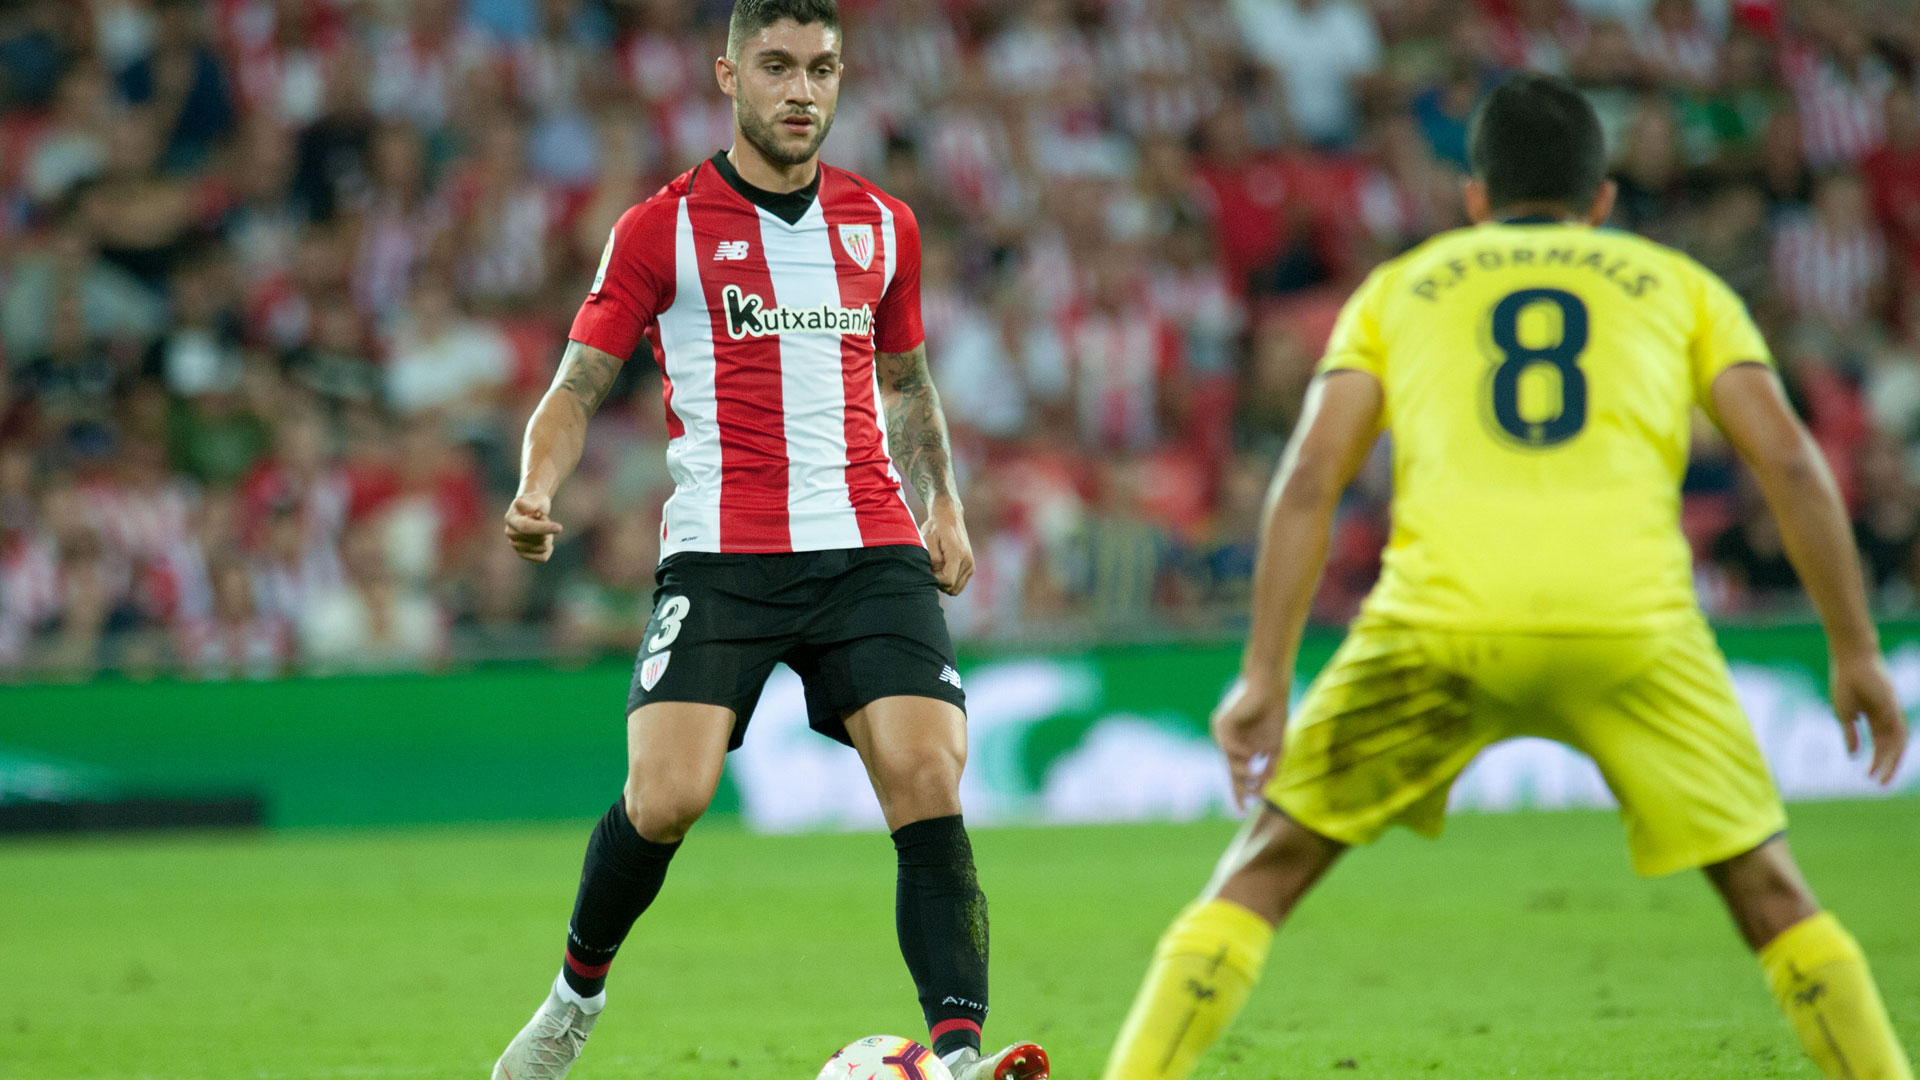 Villarreal CF – Athletic Club : retrait des billets